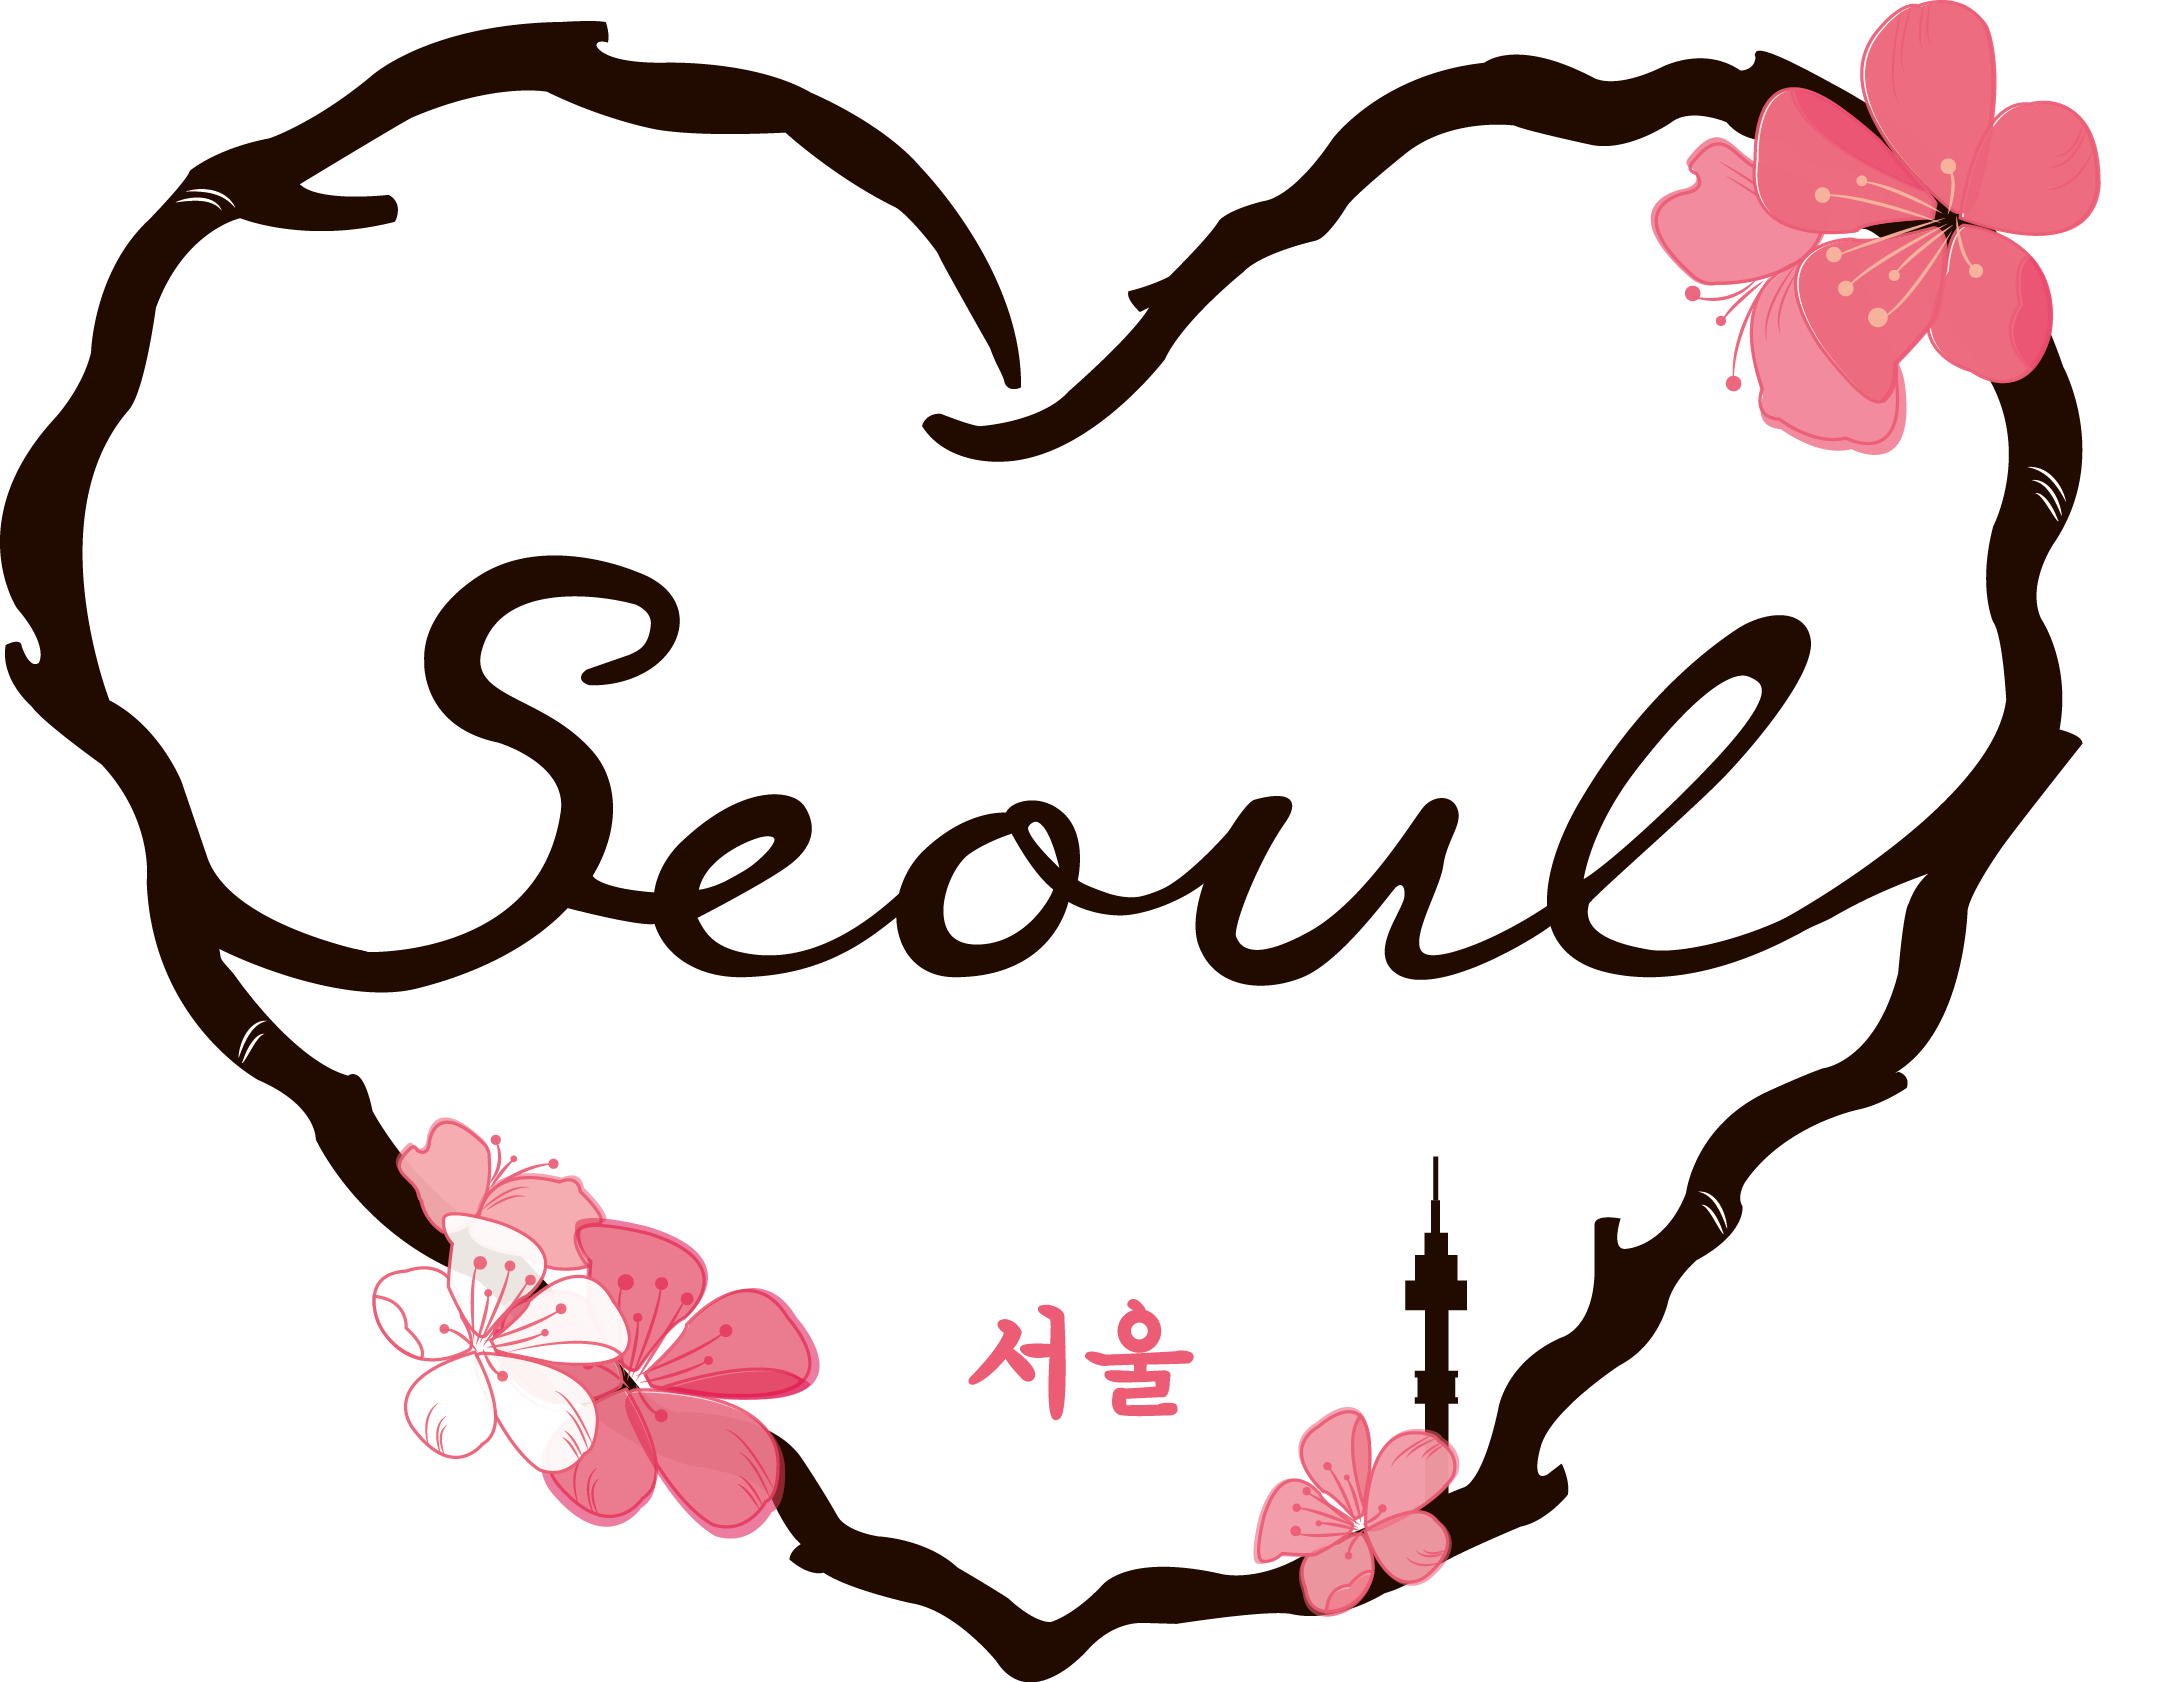 Seoul Typography Contest - Anne Kvernberg Toven